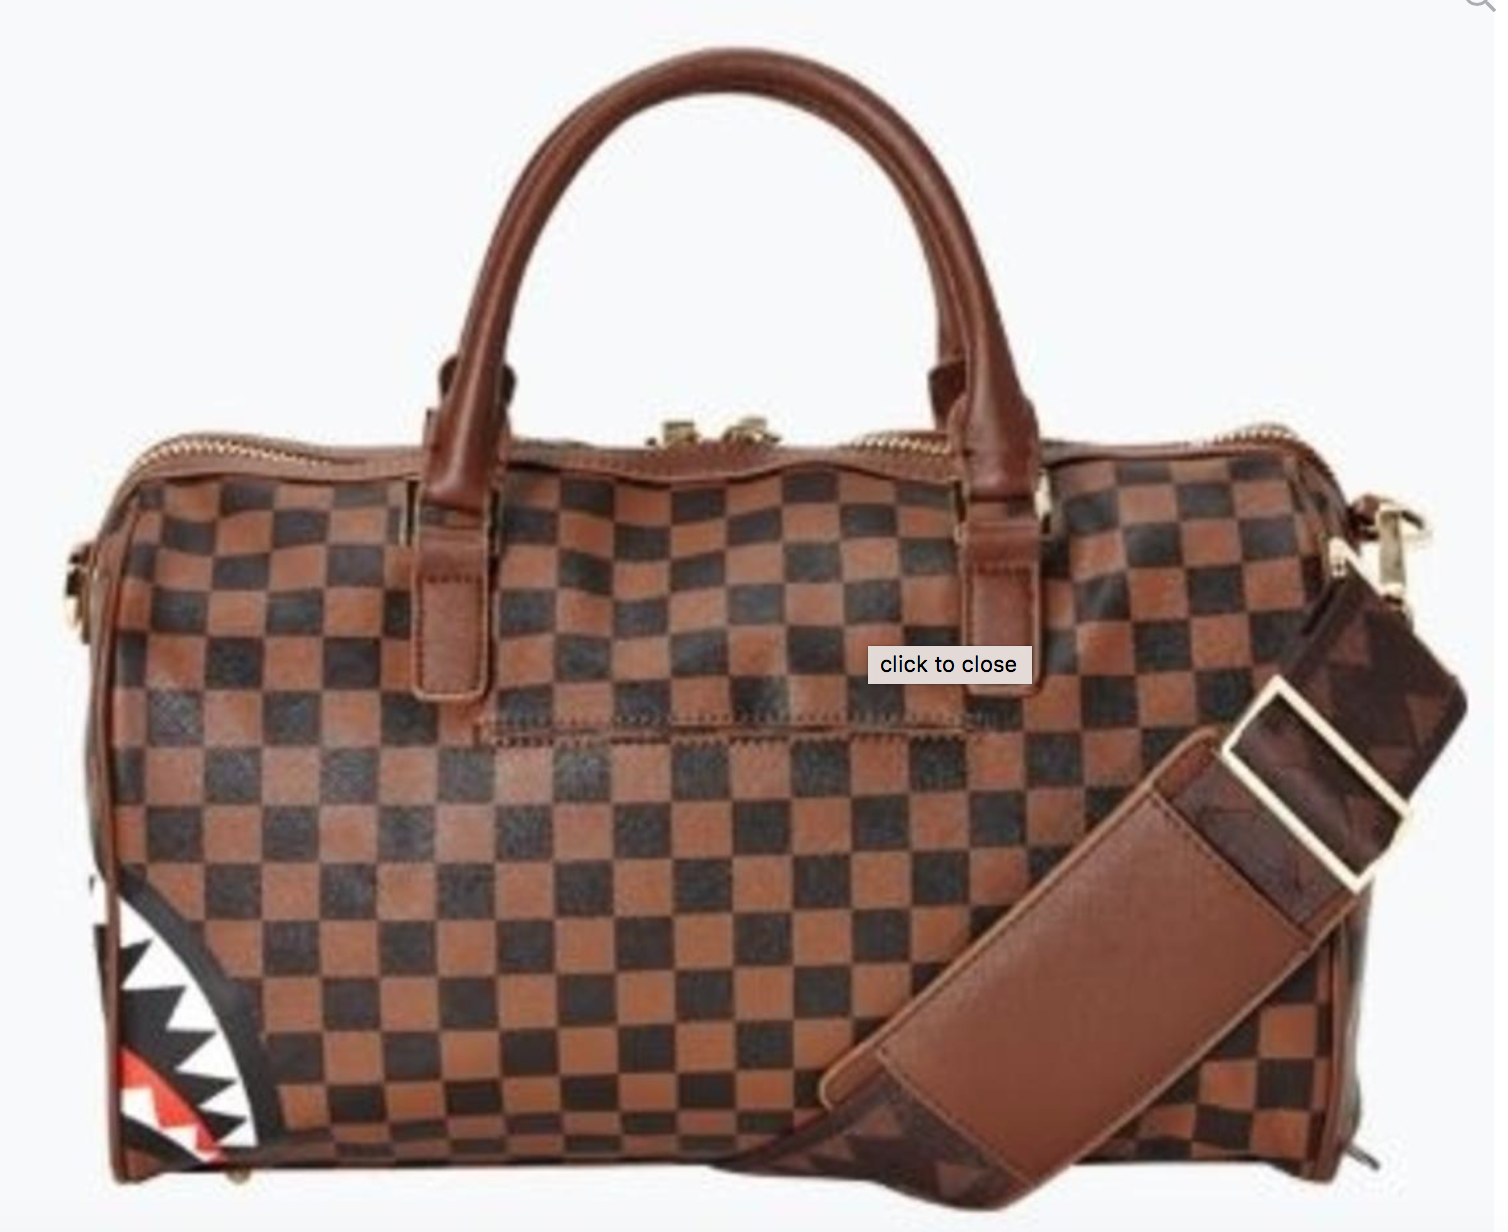 Sprayground Sharks in Paris Mini Duffle